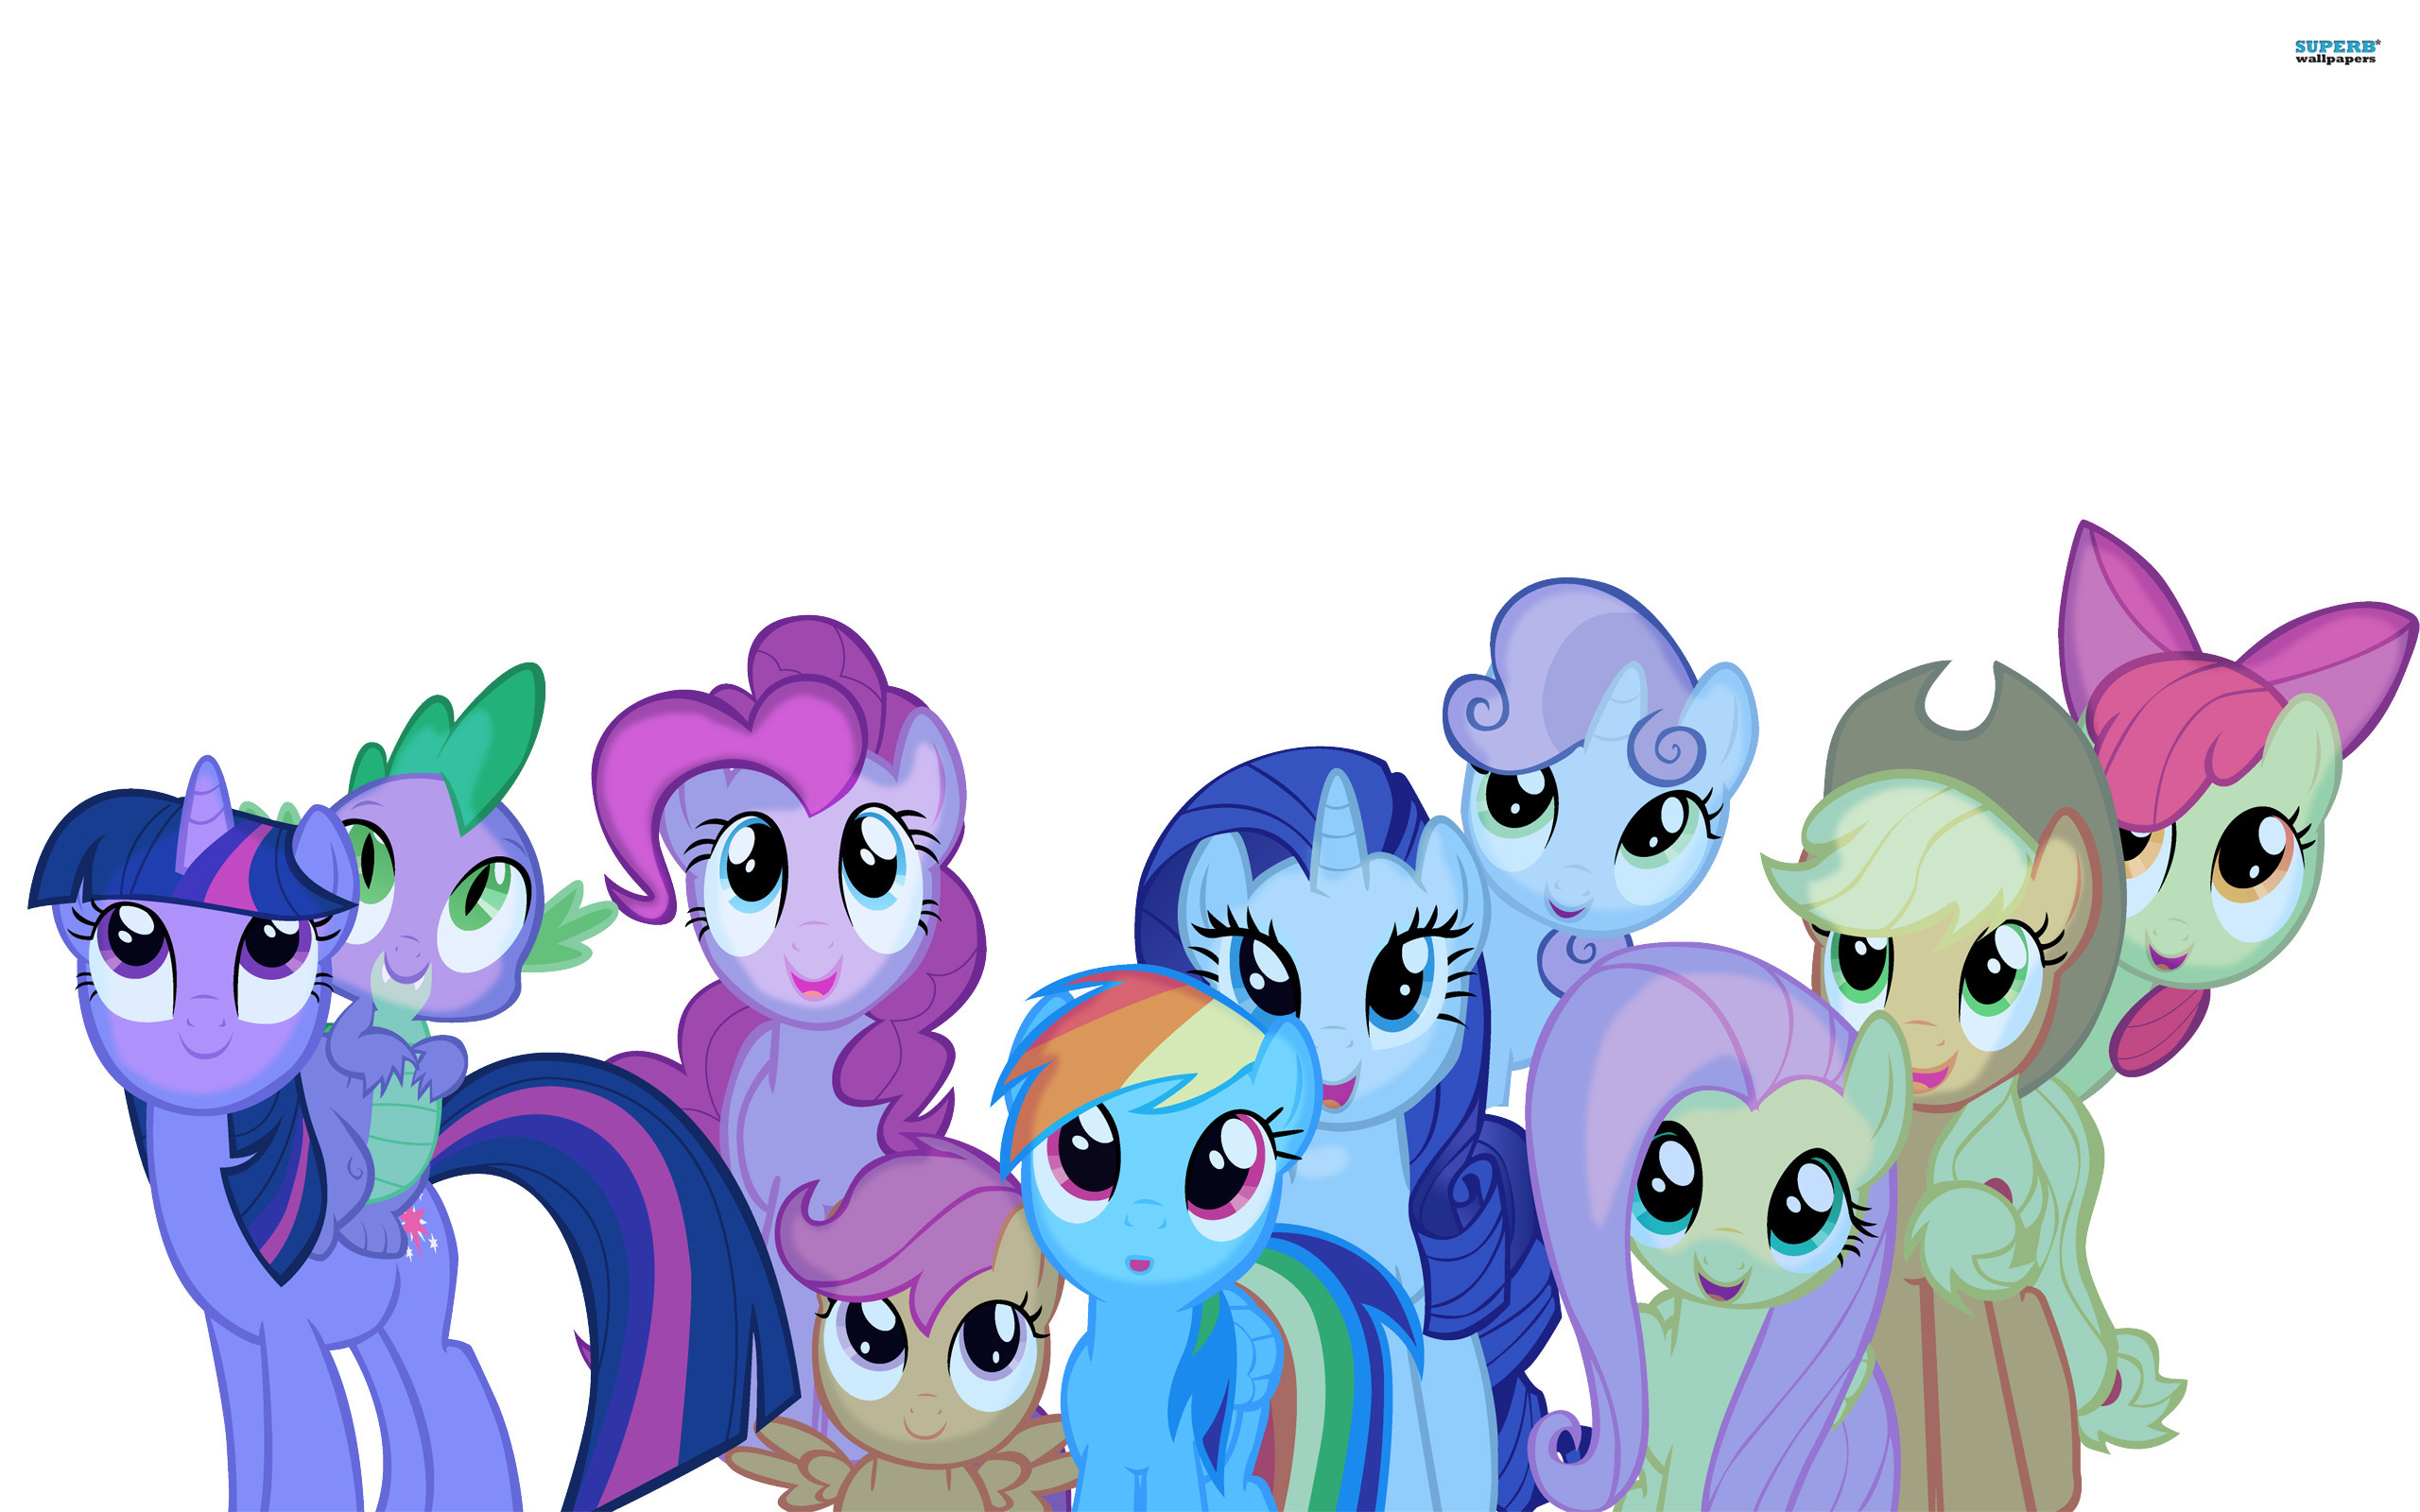 aurara entertainment with that really dont show pretty episode magic episodes good then weird inappropriate again silly isnt canon just accepted actual into catching edit high stayed relatively like fluttershy reals master scare check quality begin seriously should taken right impressed through halfway about something best seasons some lots definitely after couple